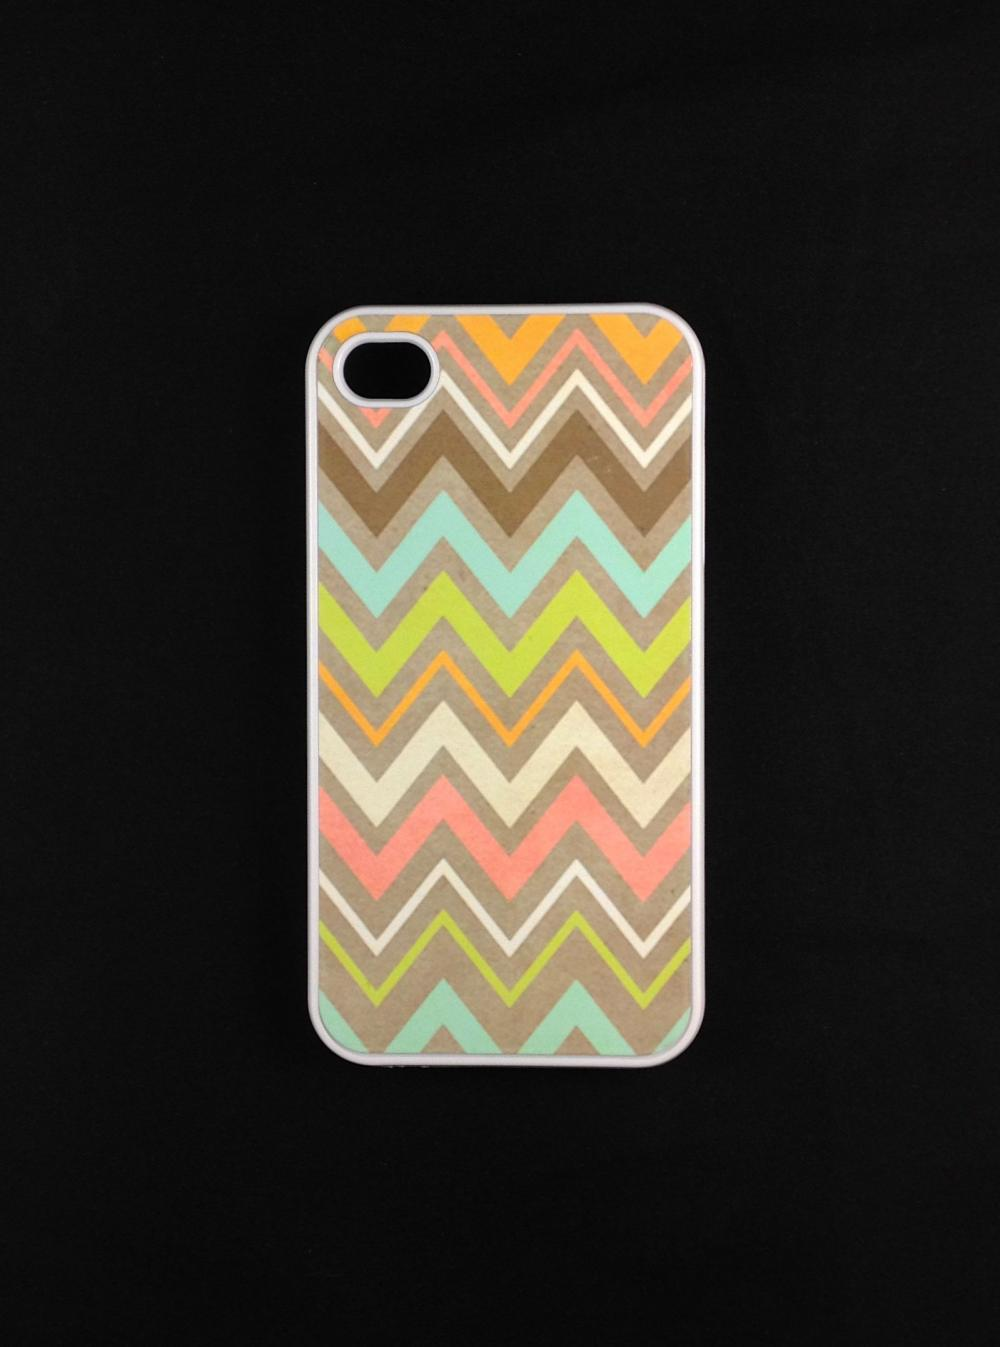 Iphone 4 Case - Tribal Chevron Iphone 4s Case, Iphone Case, Iphone 4 Cover